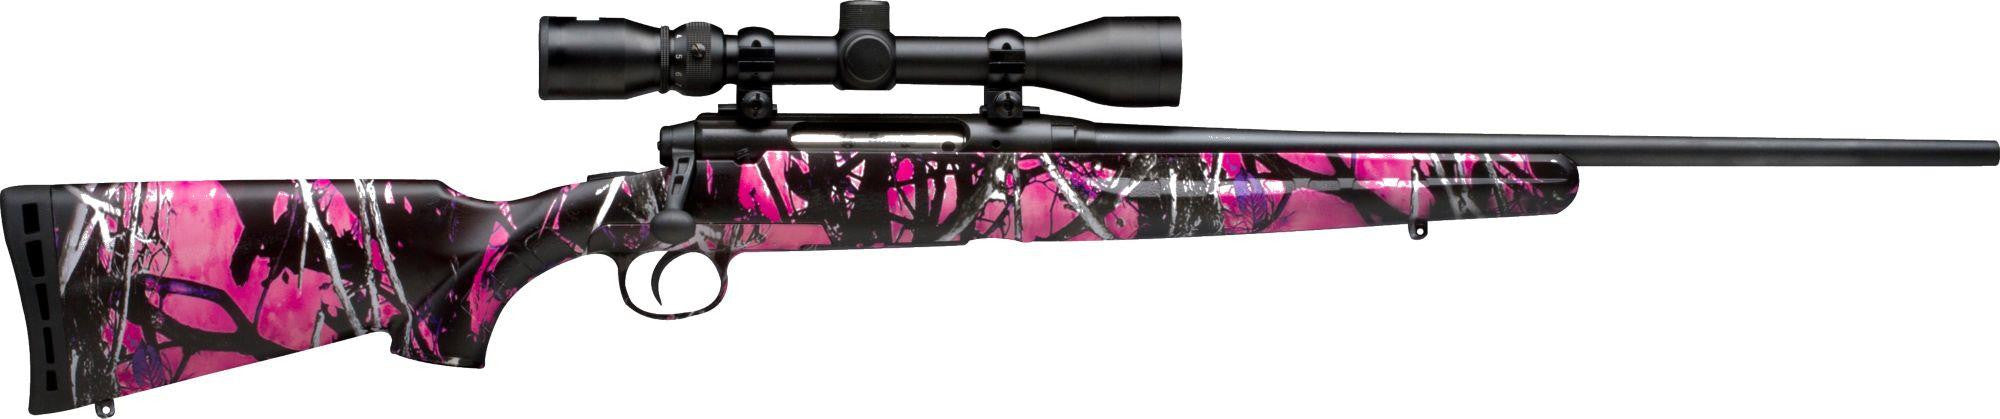 Savage Axis XP Compact Muddy Girl 243 Win W/Bushnell 3-9x40 Scope